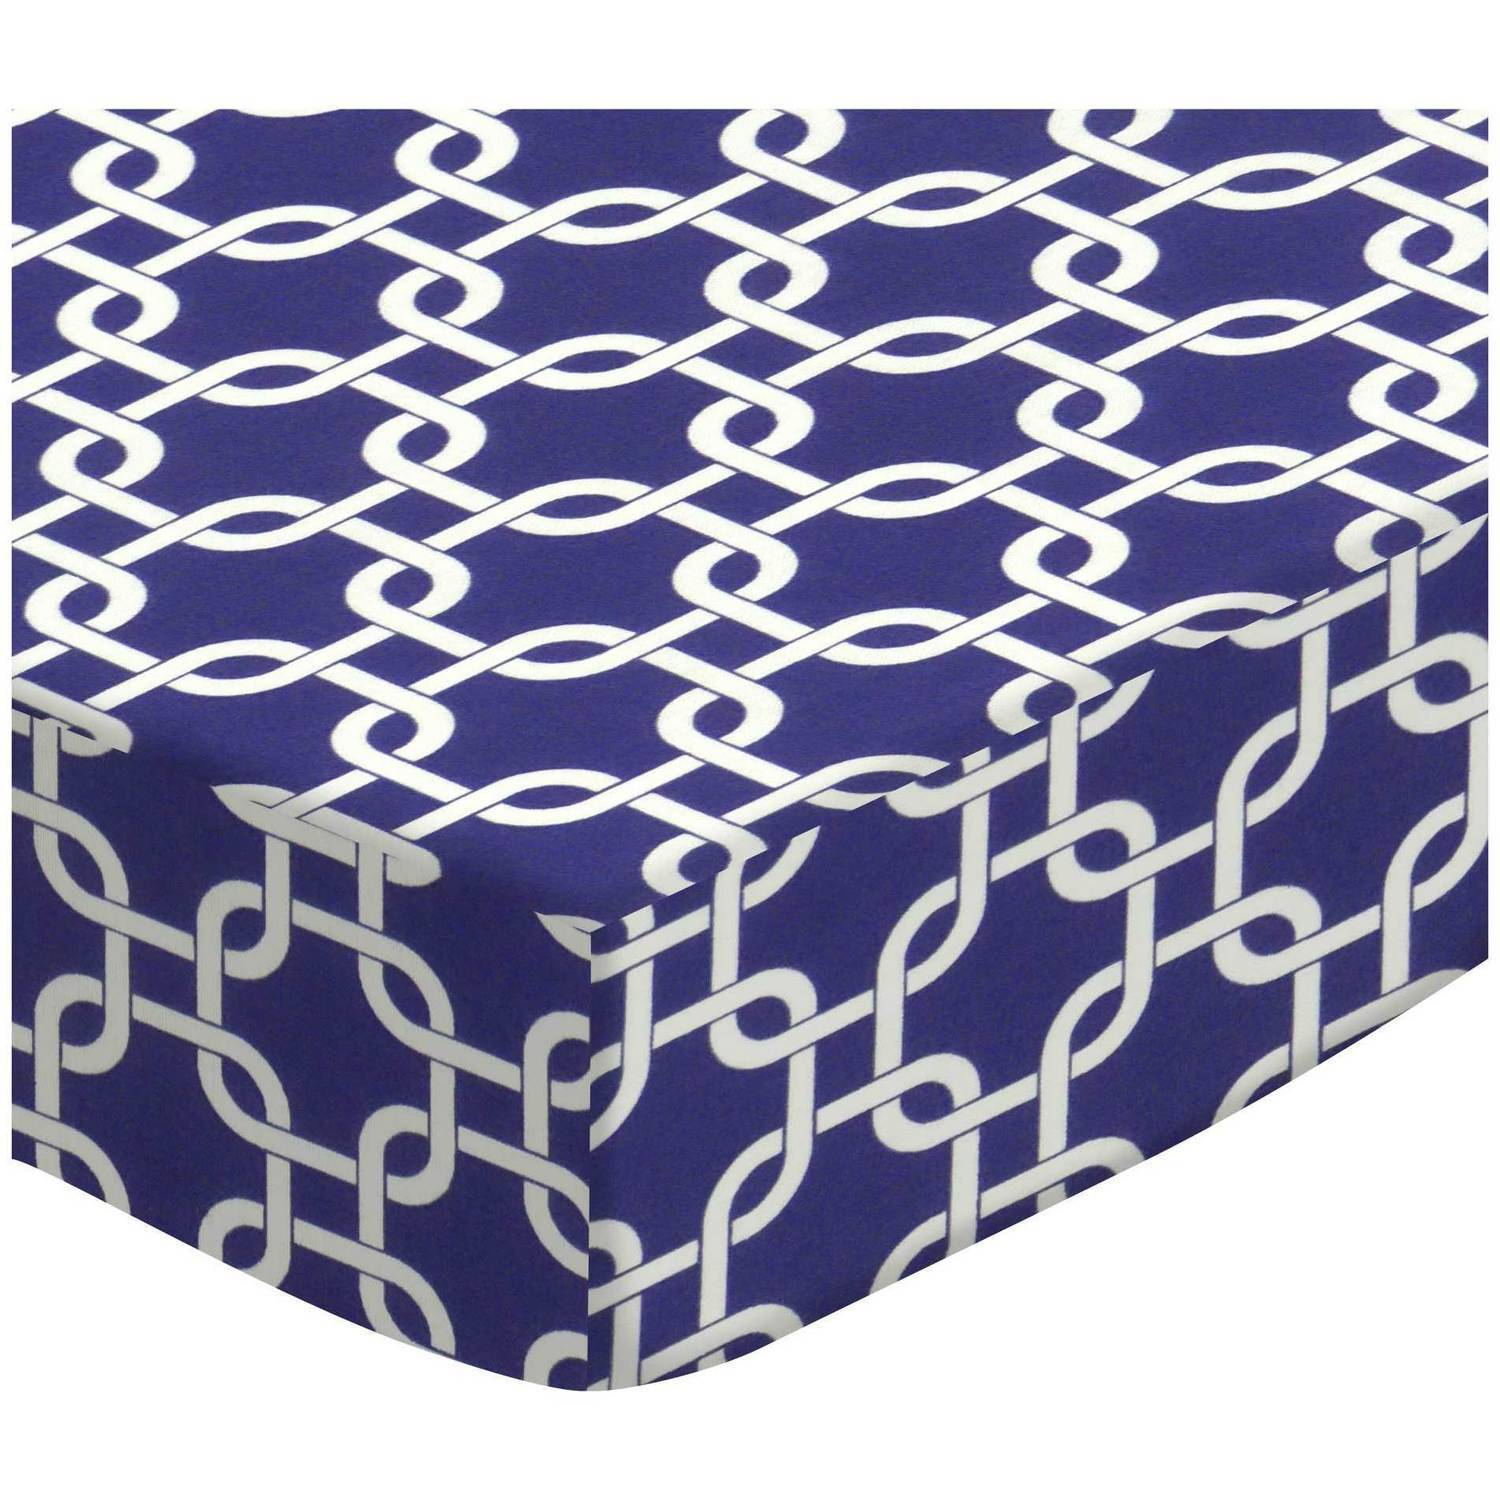 SheetWorld Fitted Fitted Oval Crib Sheet (Stokke Sleepi) - Purple Links